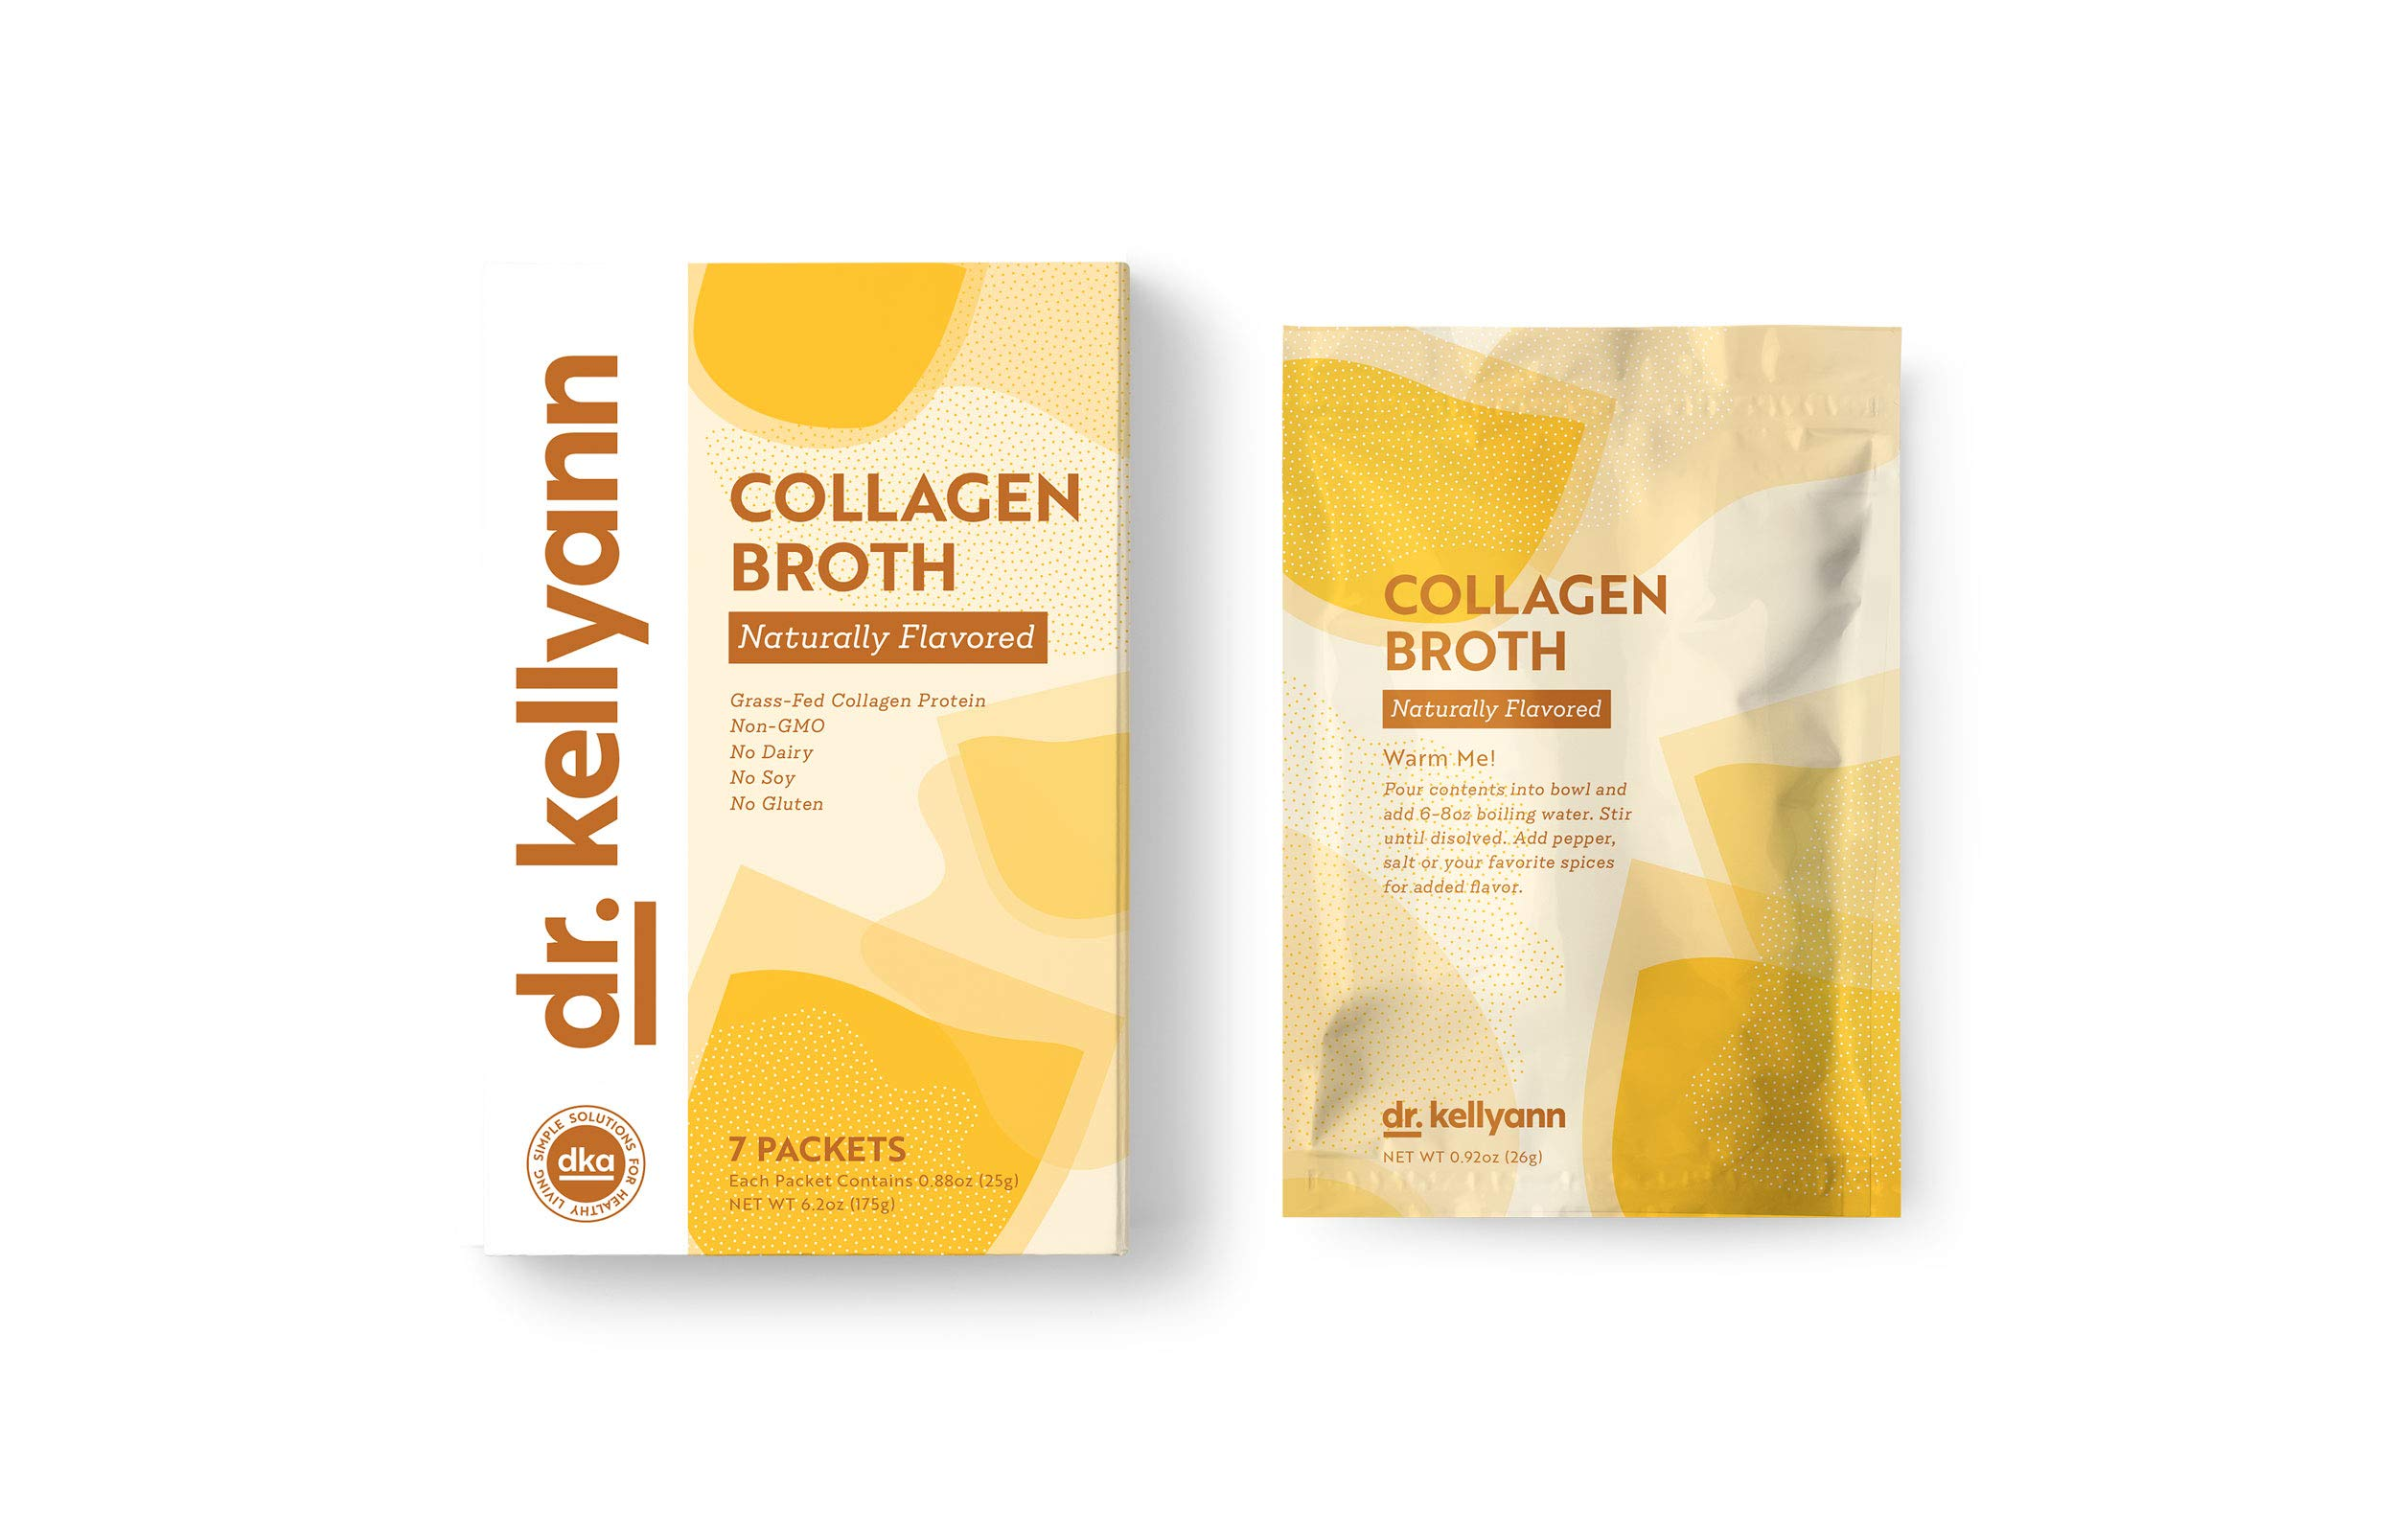 Bone Broth Collagen To Go Packets: (7 servings per box) from Bone Broth Expert Dr. Kellyann | 100% Grass-Fed Collagen | Daily Serving of Collagen